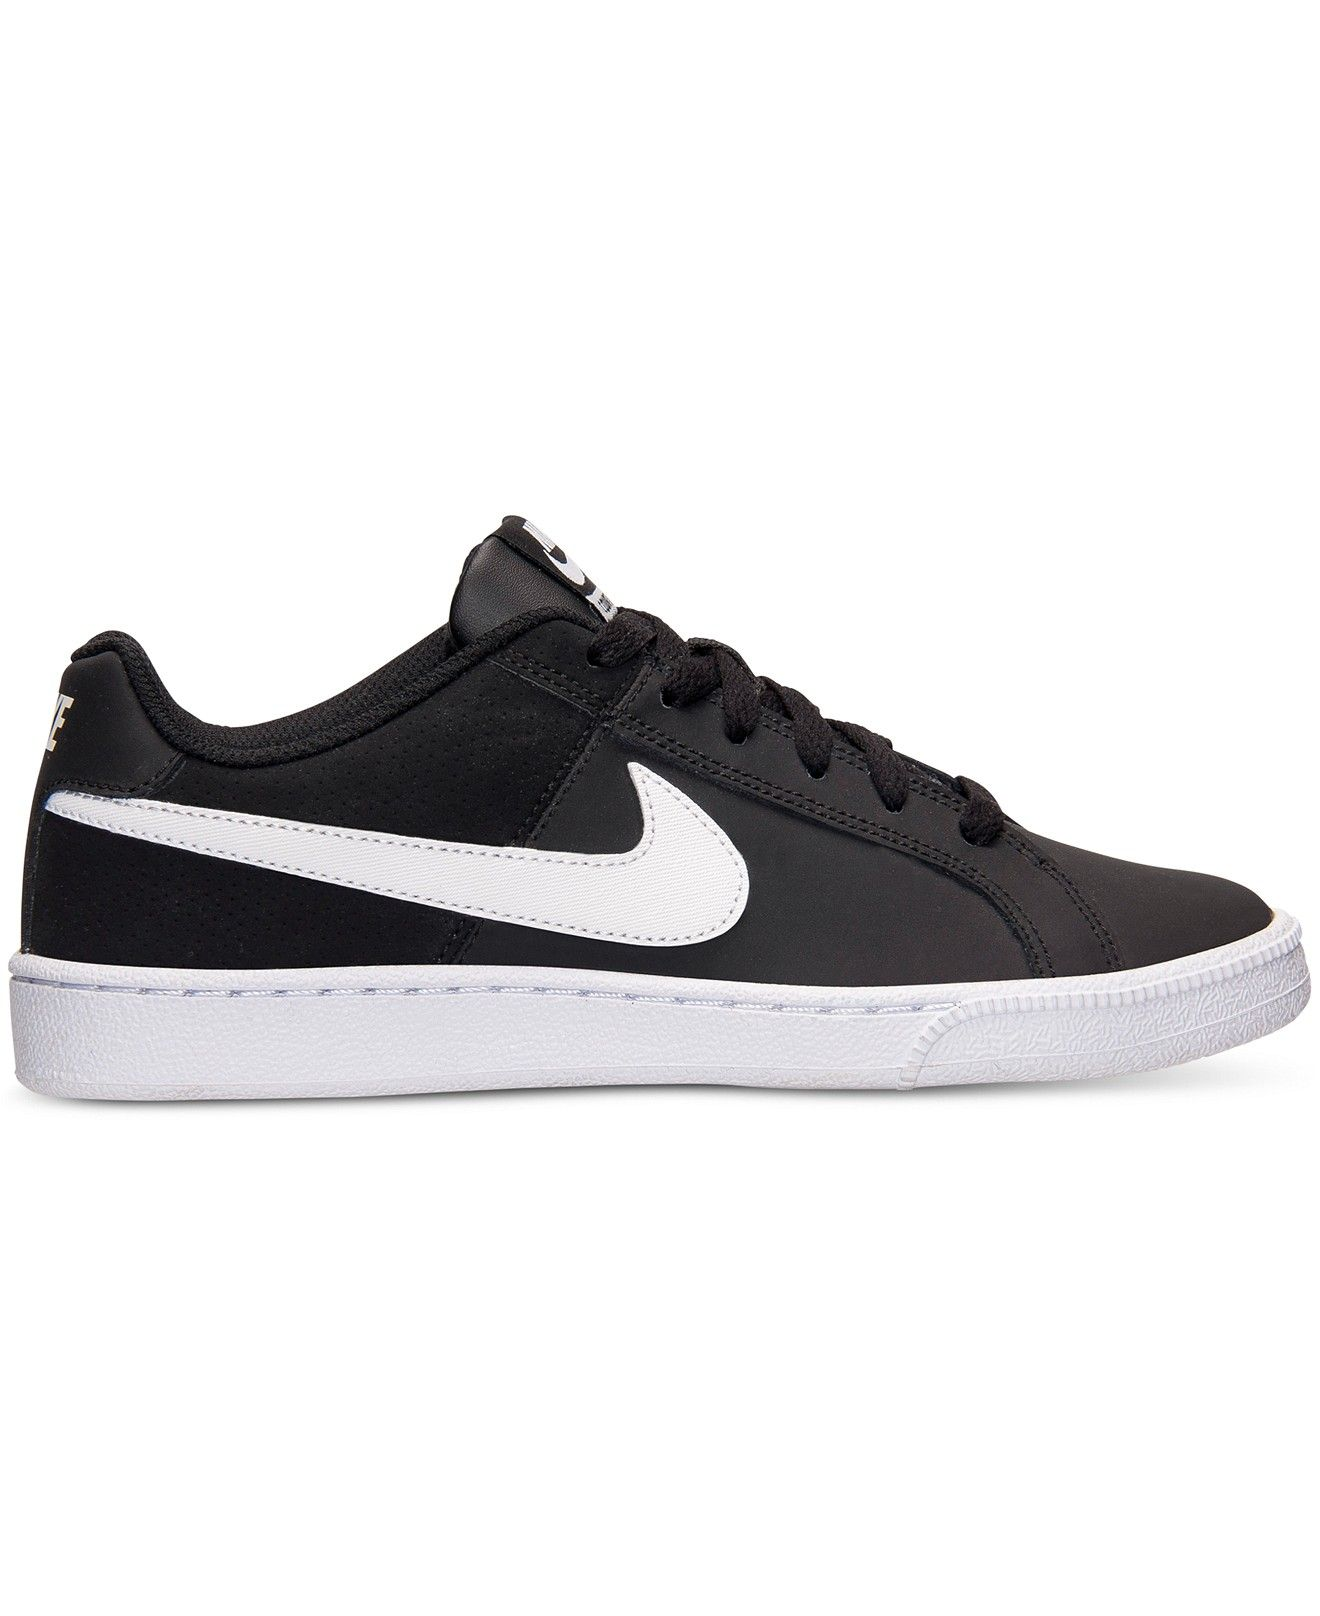 Nike Women's Court Royale Casual Sneakers from Finish Line - Finish Line  Athletic Sneakers - Shoes - Macy's